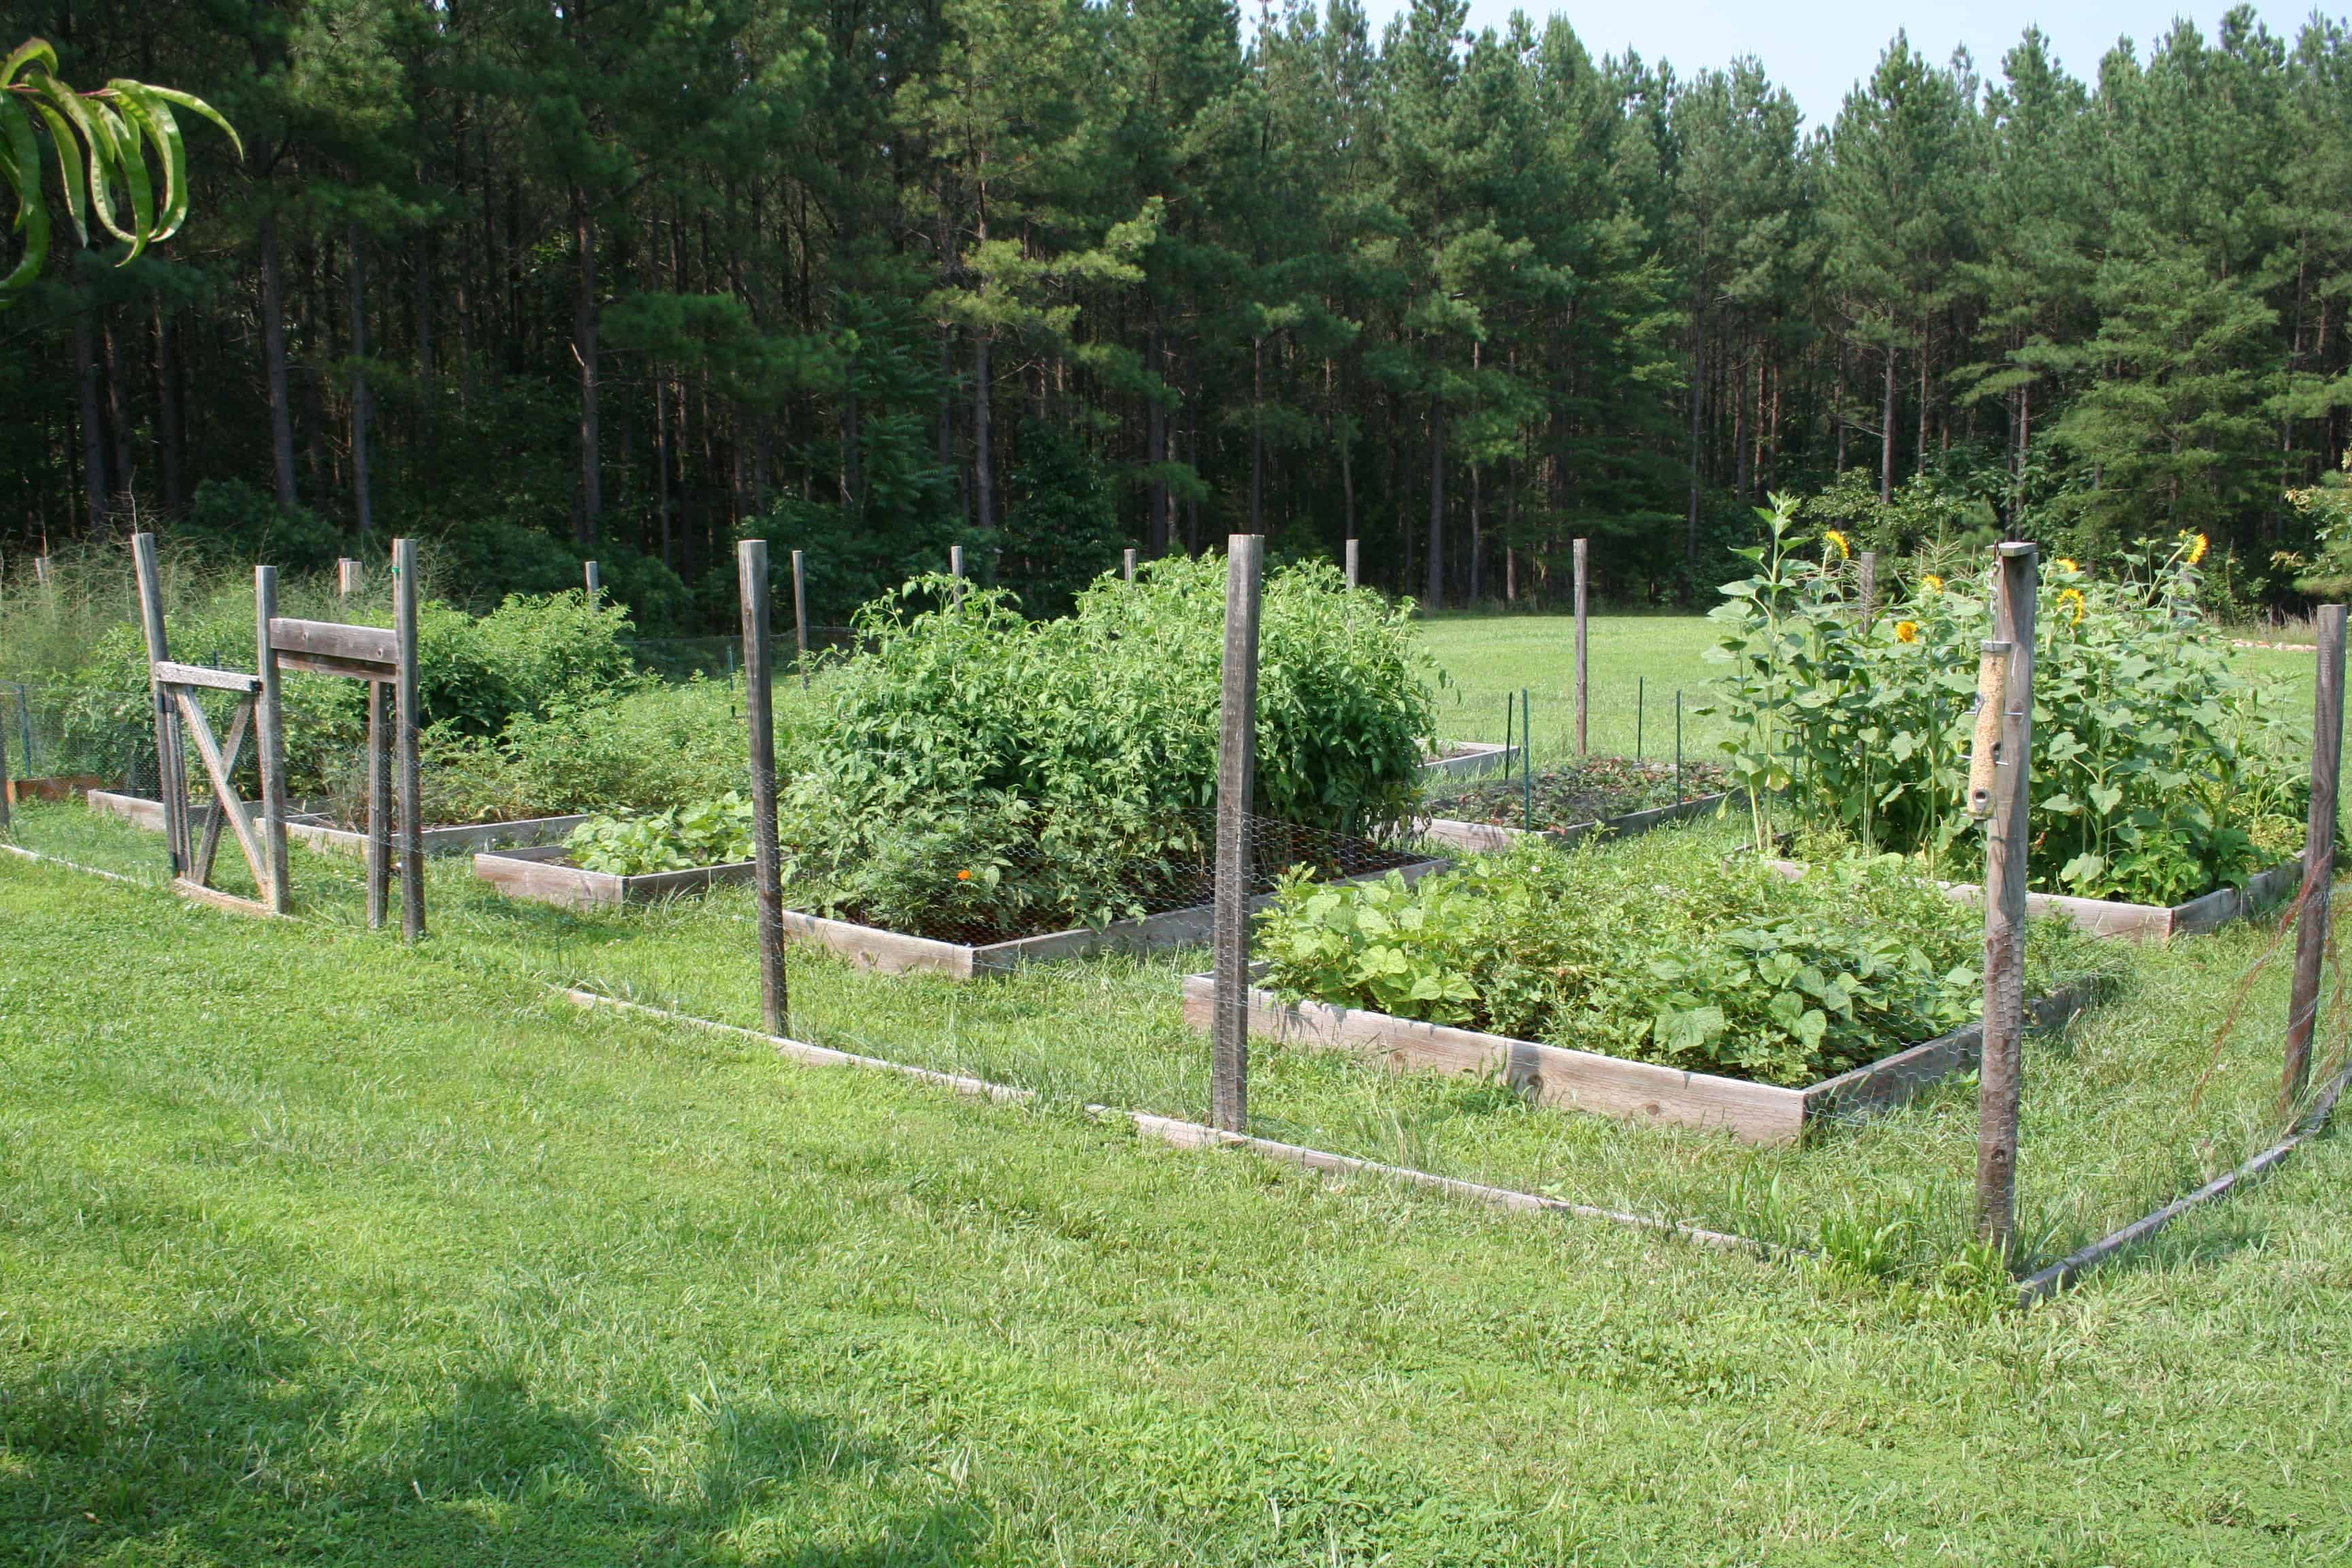 Vegetables Archives Page 6 of 34 Home Garden Joy – What to Plant in My Vegetable Garden